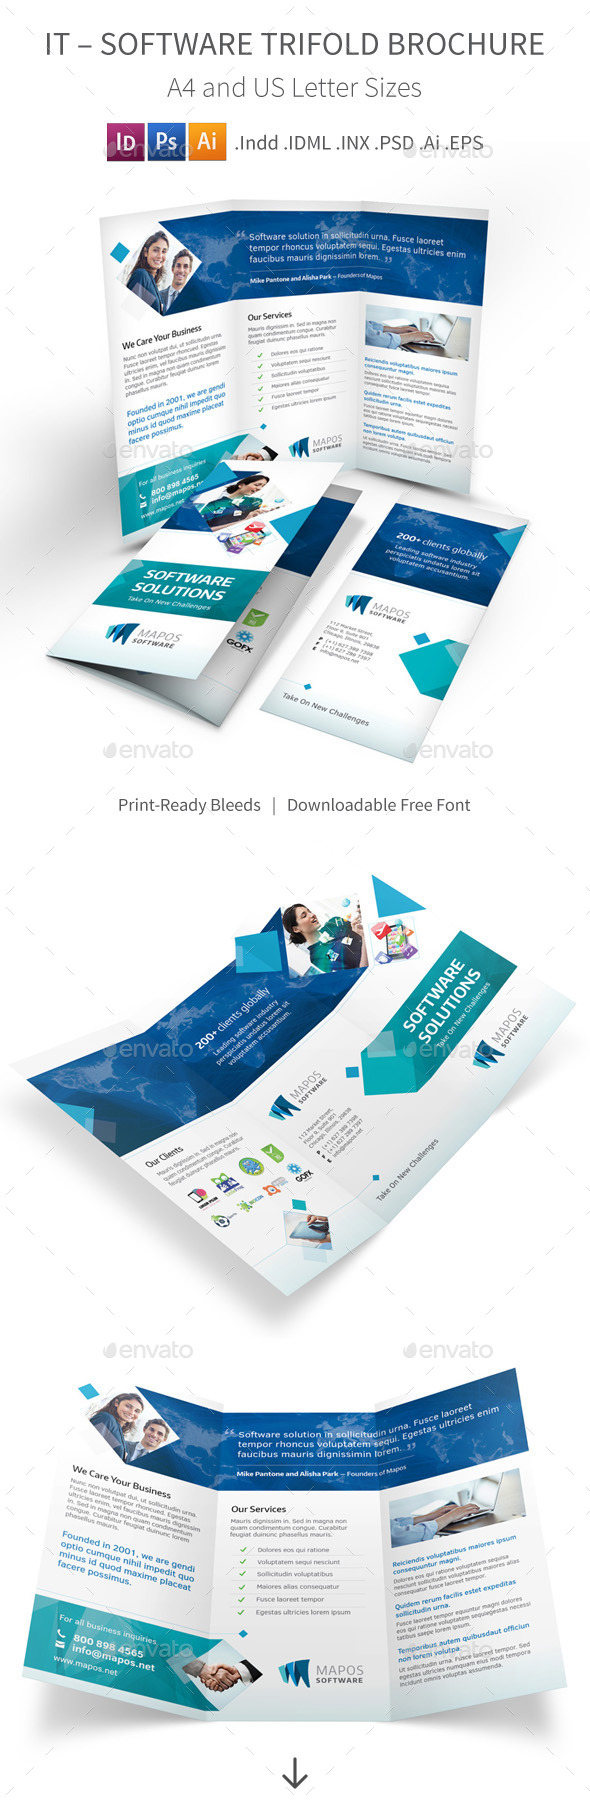 IT Software Trifold Brochure